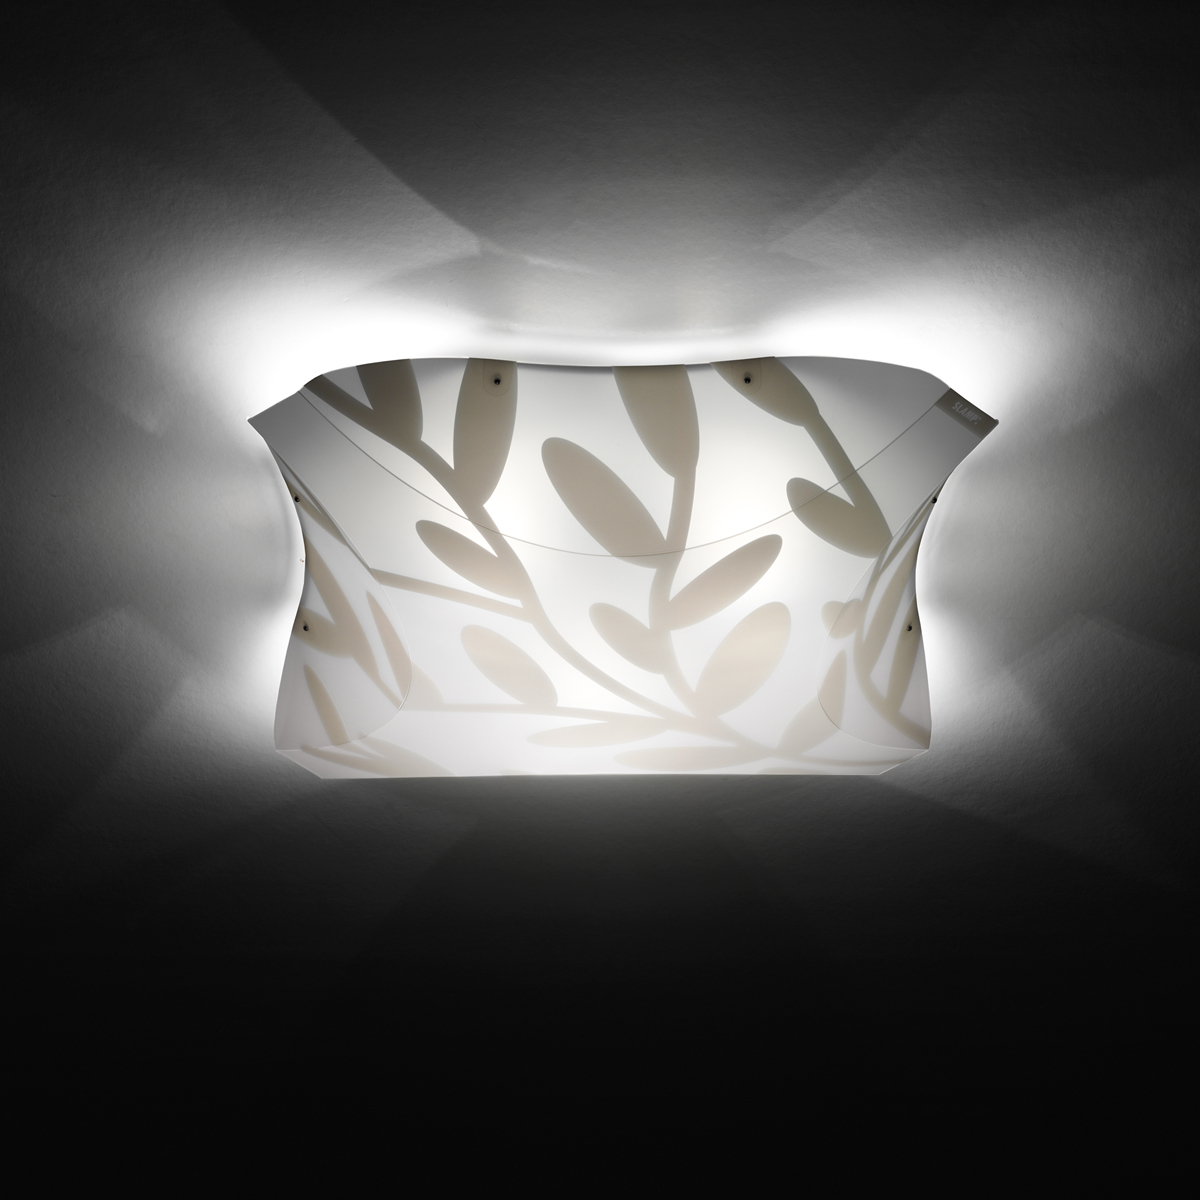 Dafne Plana Large Wall Lamp